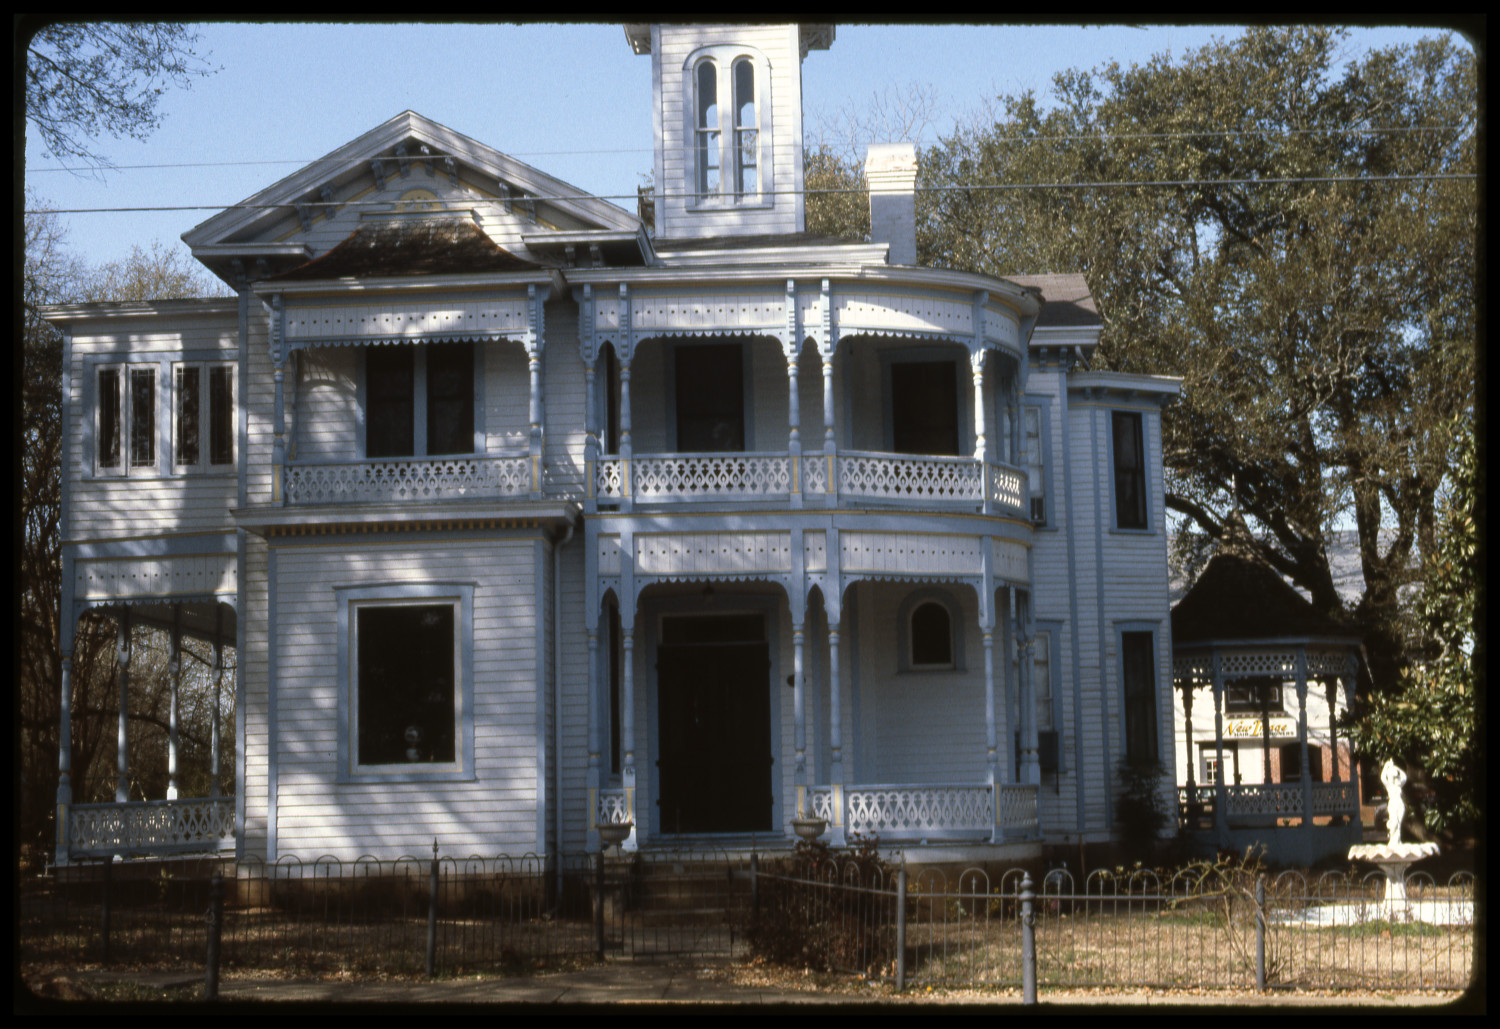 [301 S. Magnolia - Bowers Mansion]                                                                                                      [Sequence #]: 1 of 1